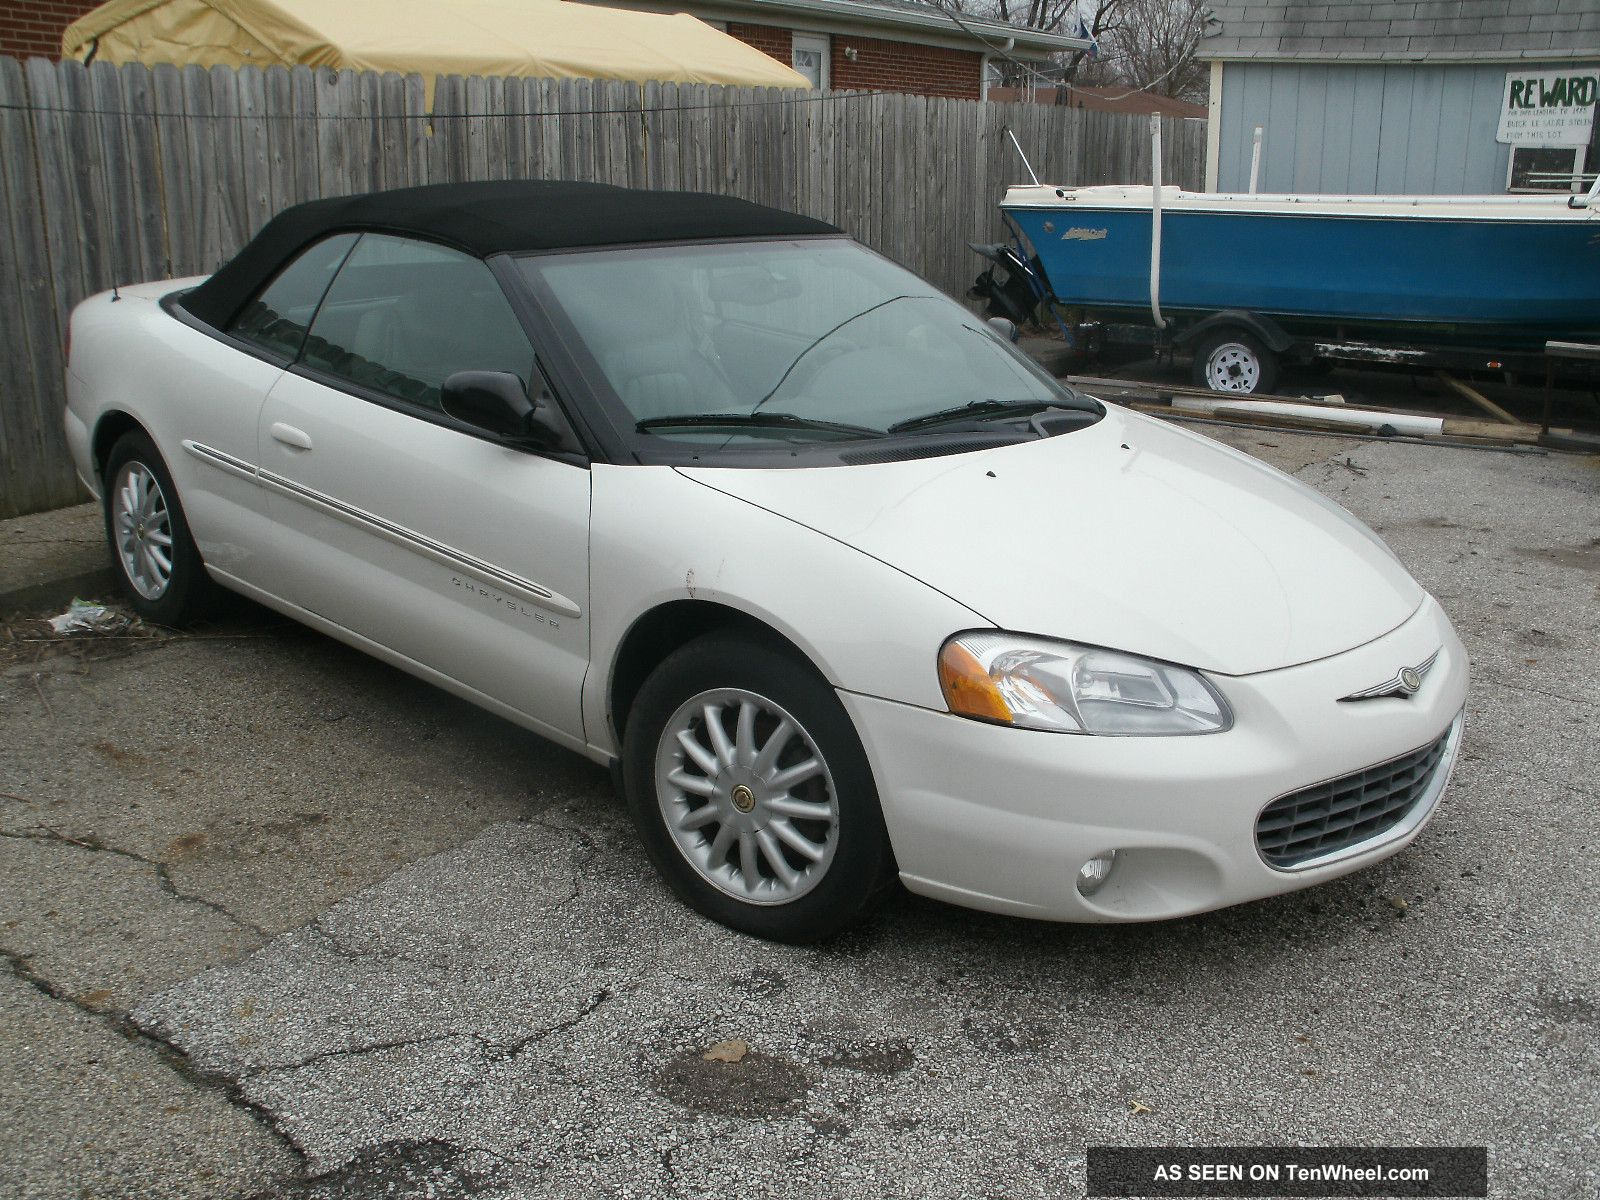 touring hardtop sebring listing convertible chrysler listings auto inventory canpak inc